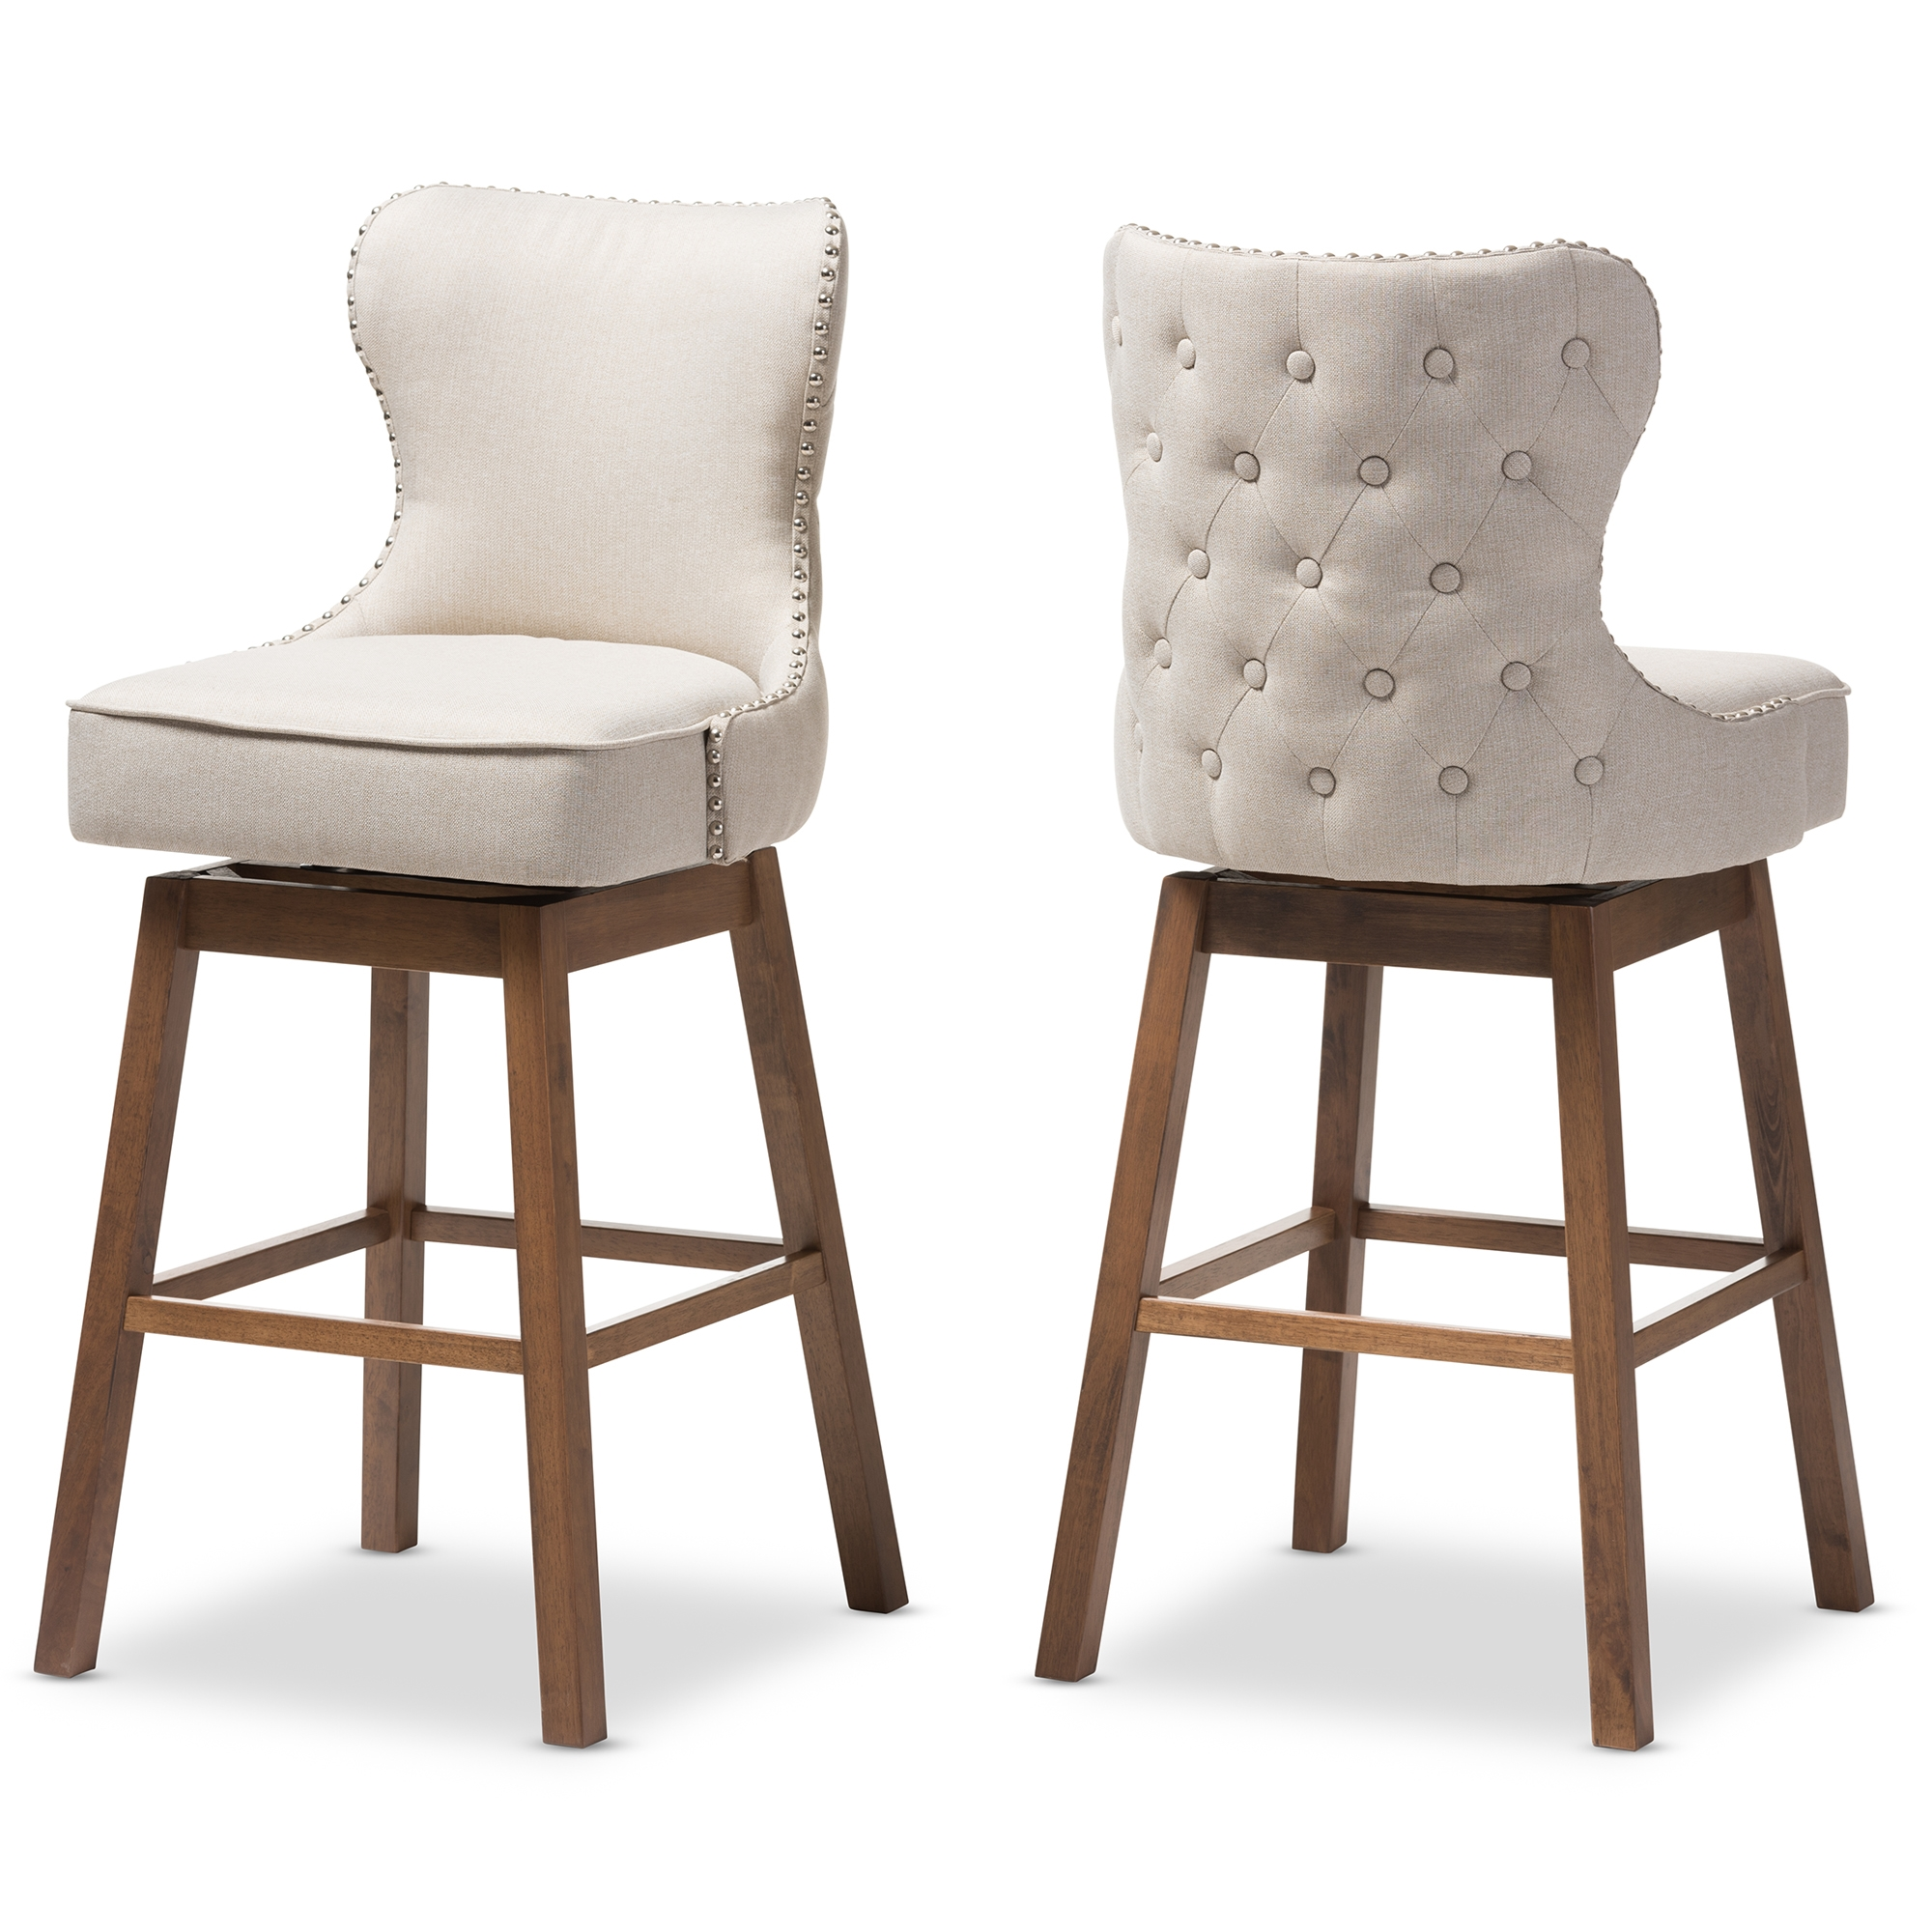 Image Result For Wood And Leather Bar Stools